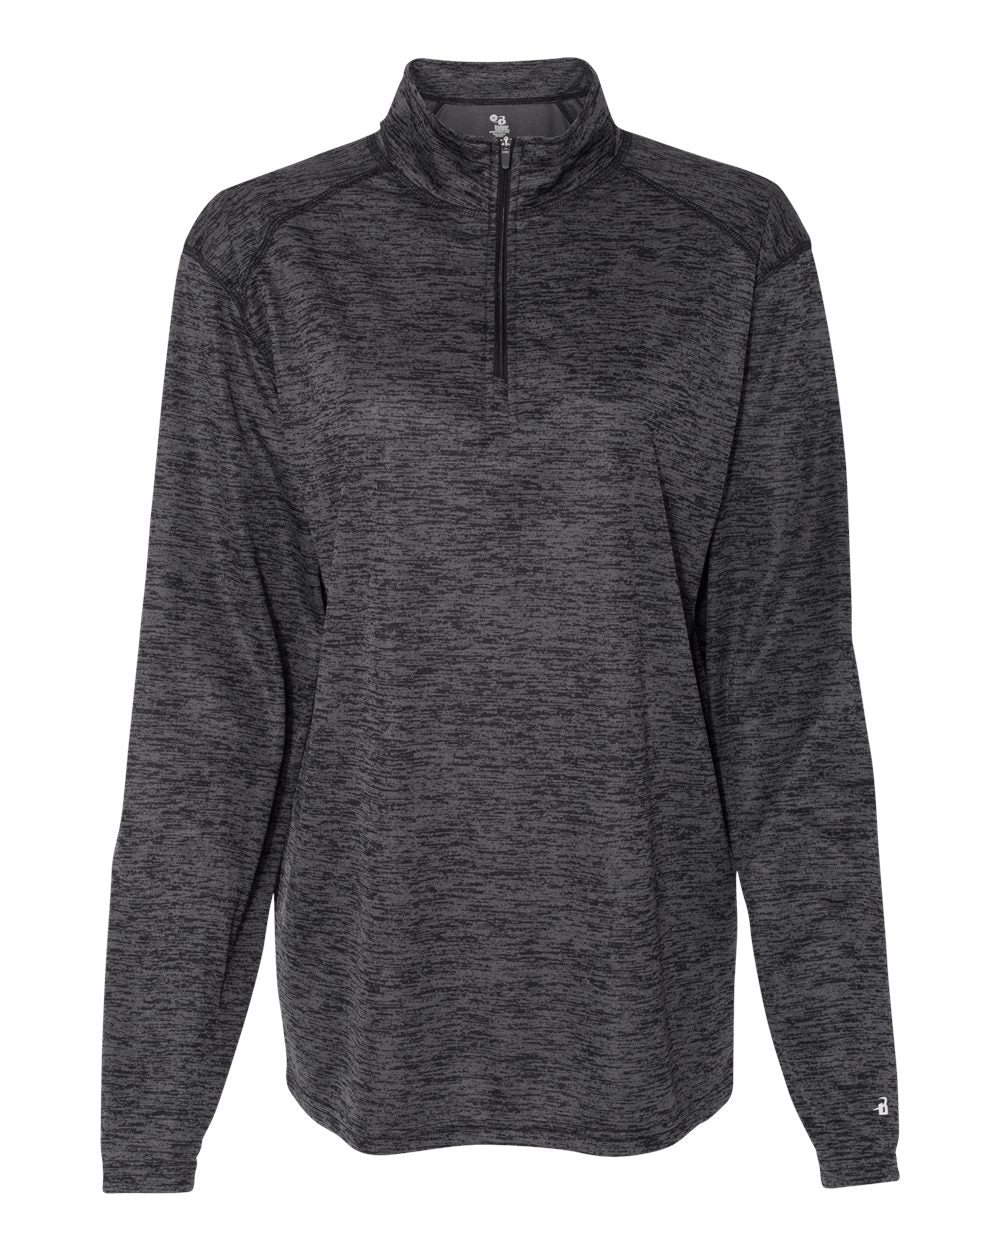 Lightweight Ladies Drifit Quarter Zip